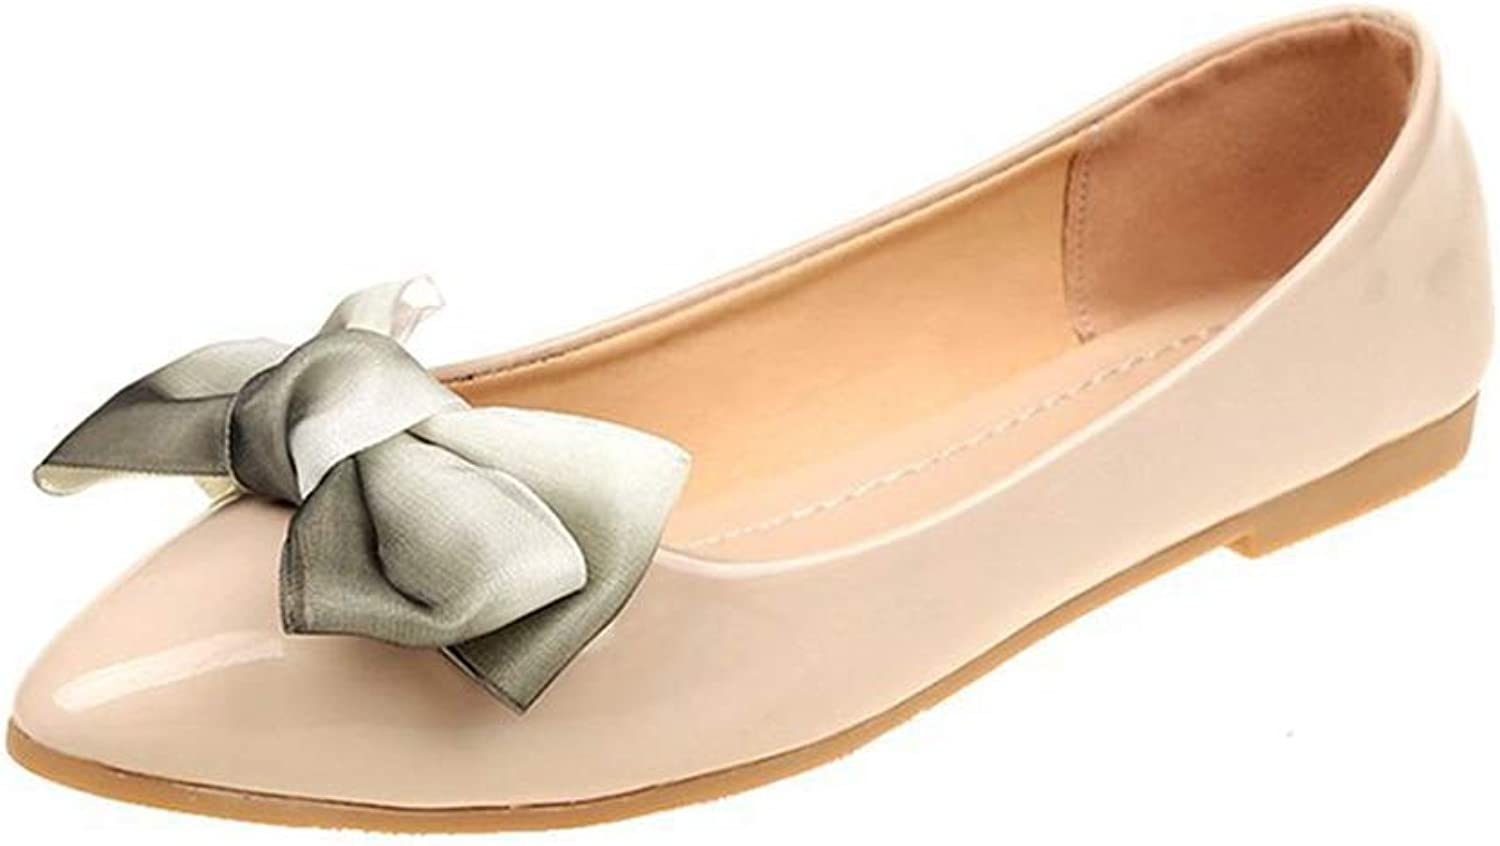 Women Flats shoes Bowknot Pointed Toe Patent Leather Soft Sole Dress Flats shoes